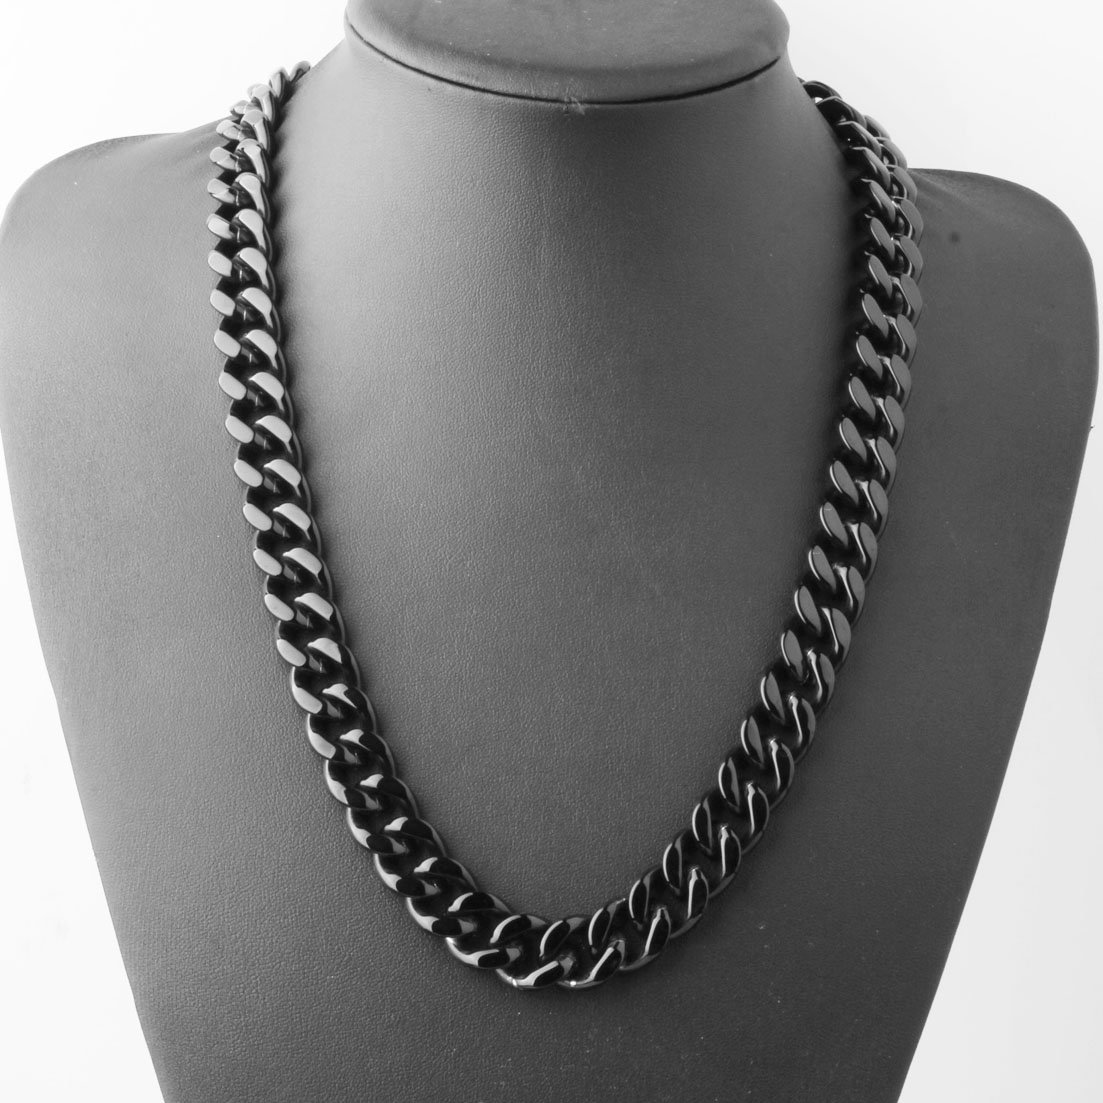 Stainless Steel 15mm Cuban Curb Chain Men Necklace 16-40 Inch,Black